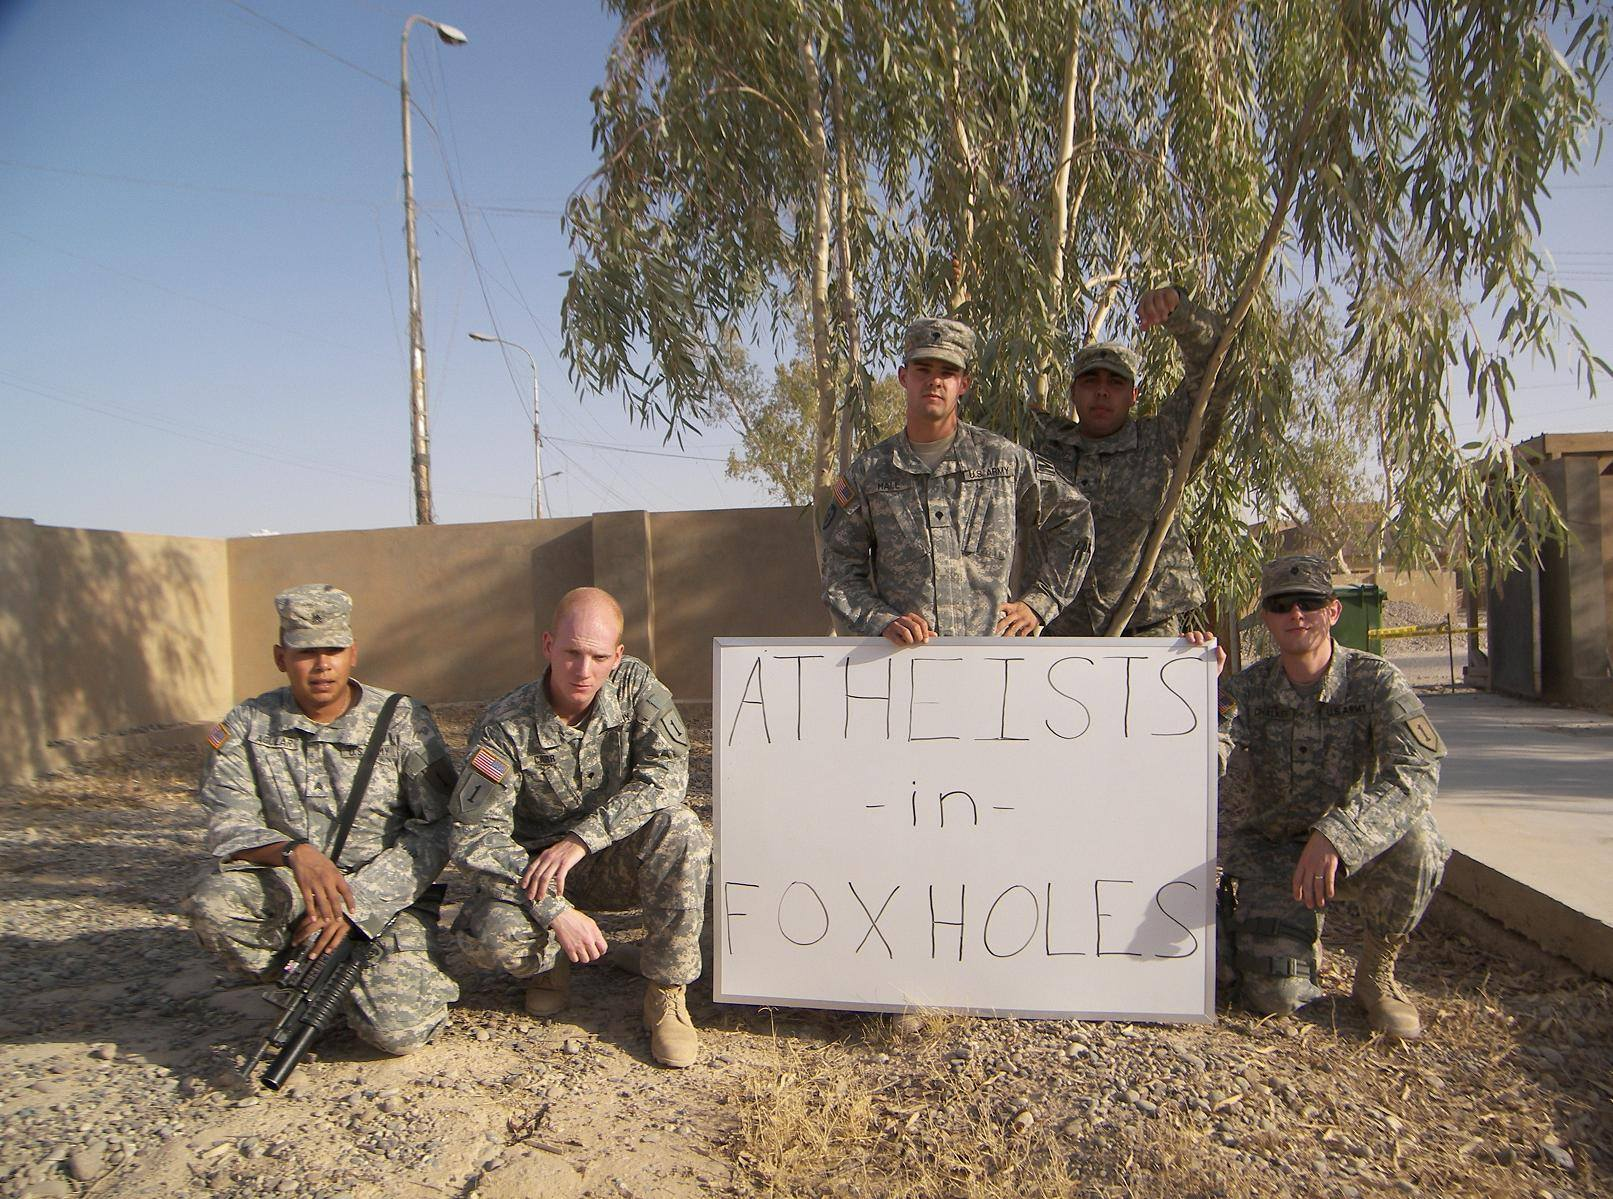 no atheists in foxholes essay No atheists in foxholes - an ignorant statement i would like to take a look at what is generally meant when someone says there are no atheists in foxholes.